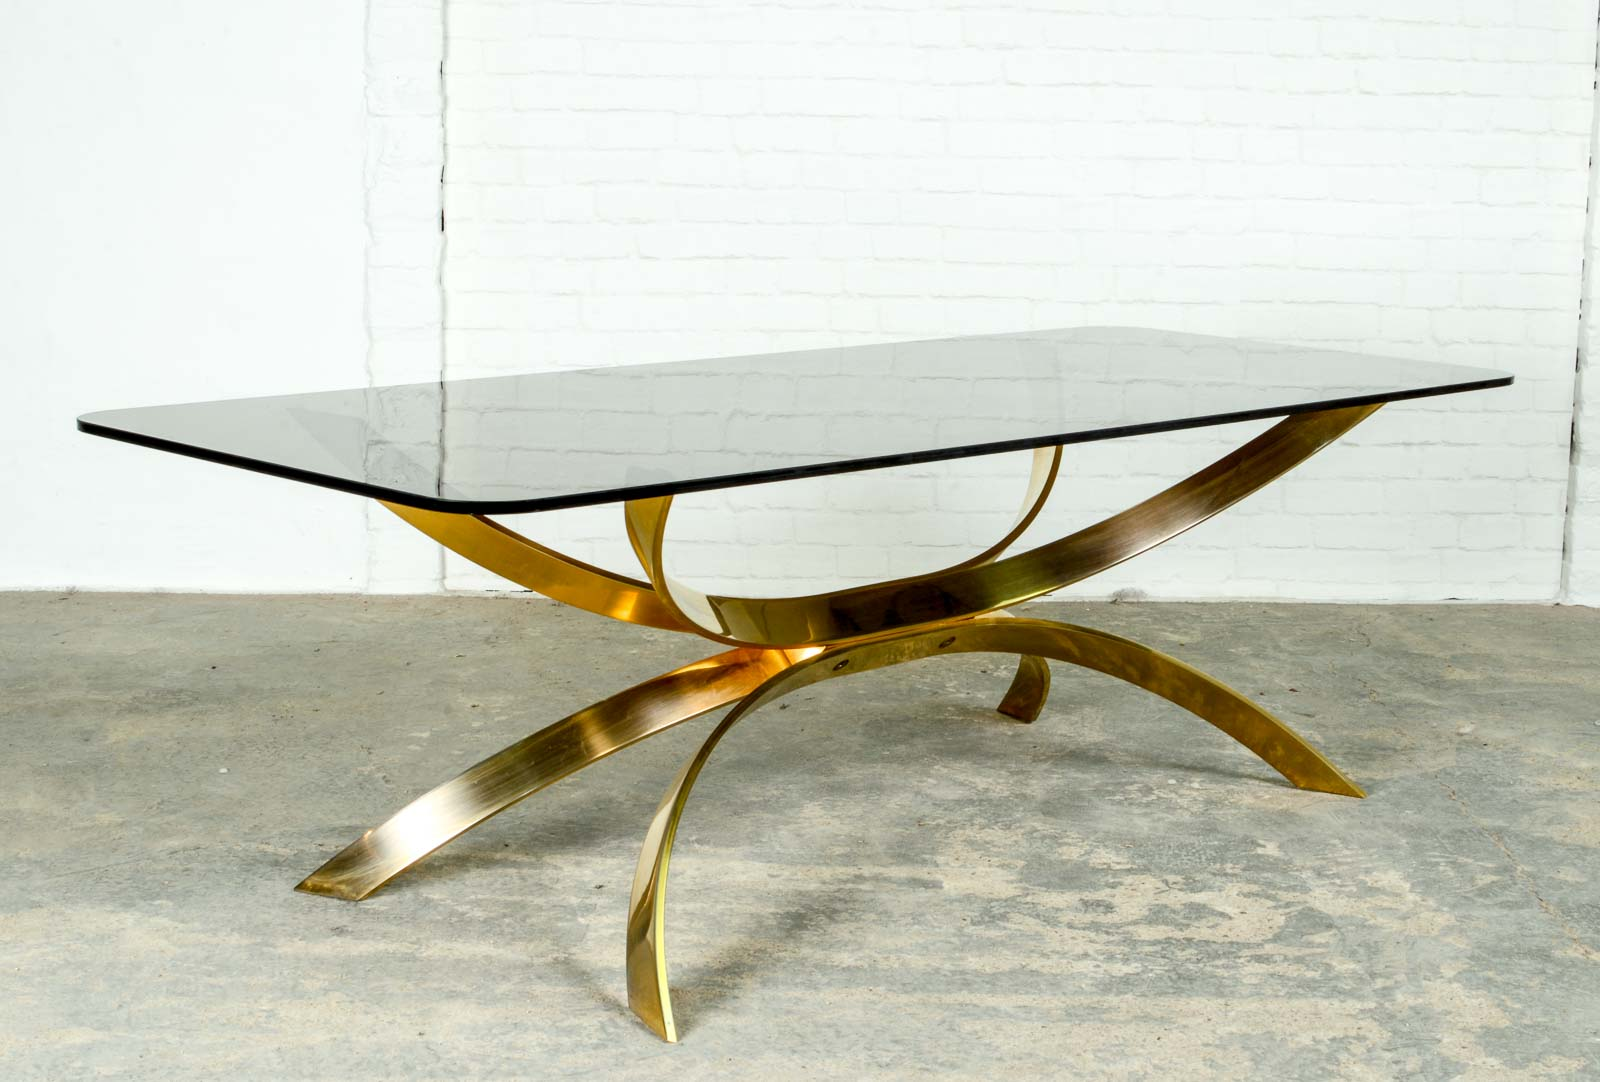 Sculptured Gold Italian Coffee Table In Style Of Osvaldo Borsani